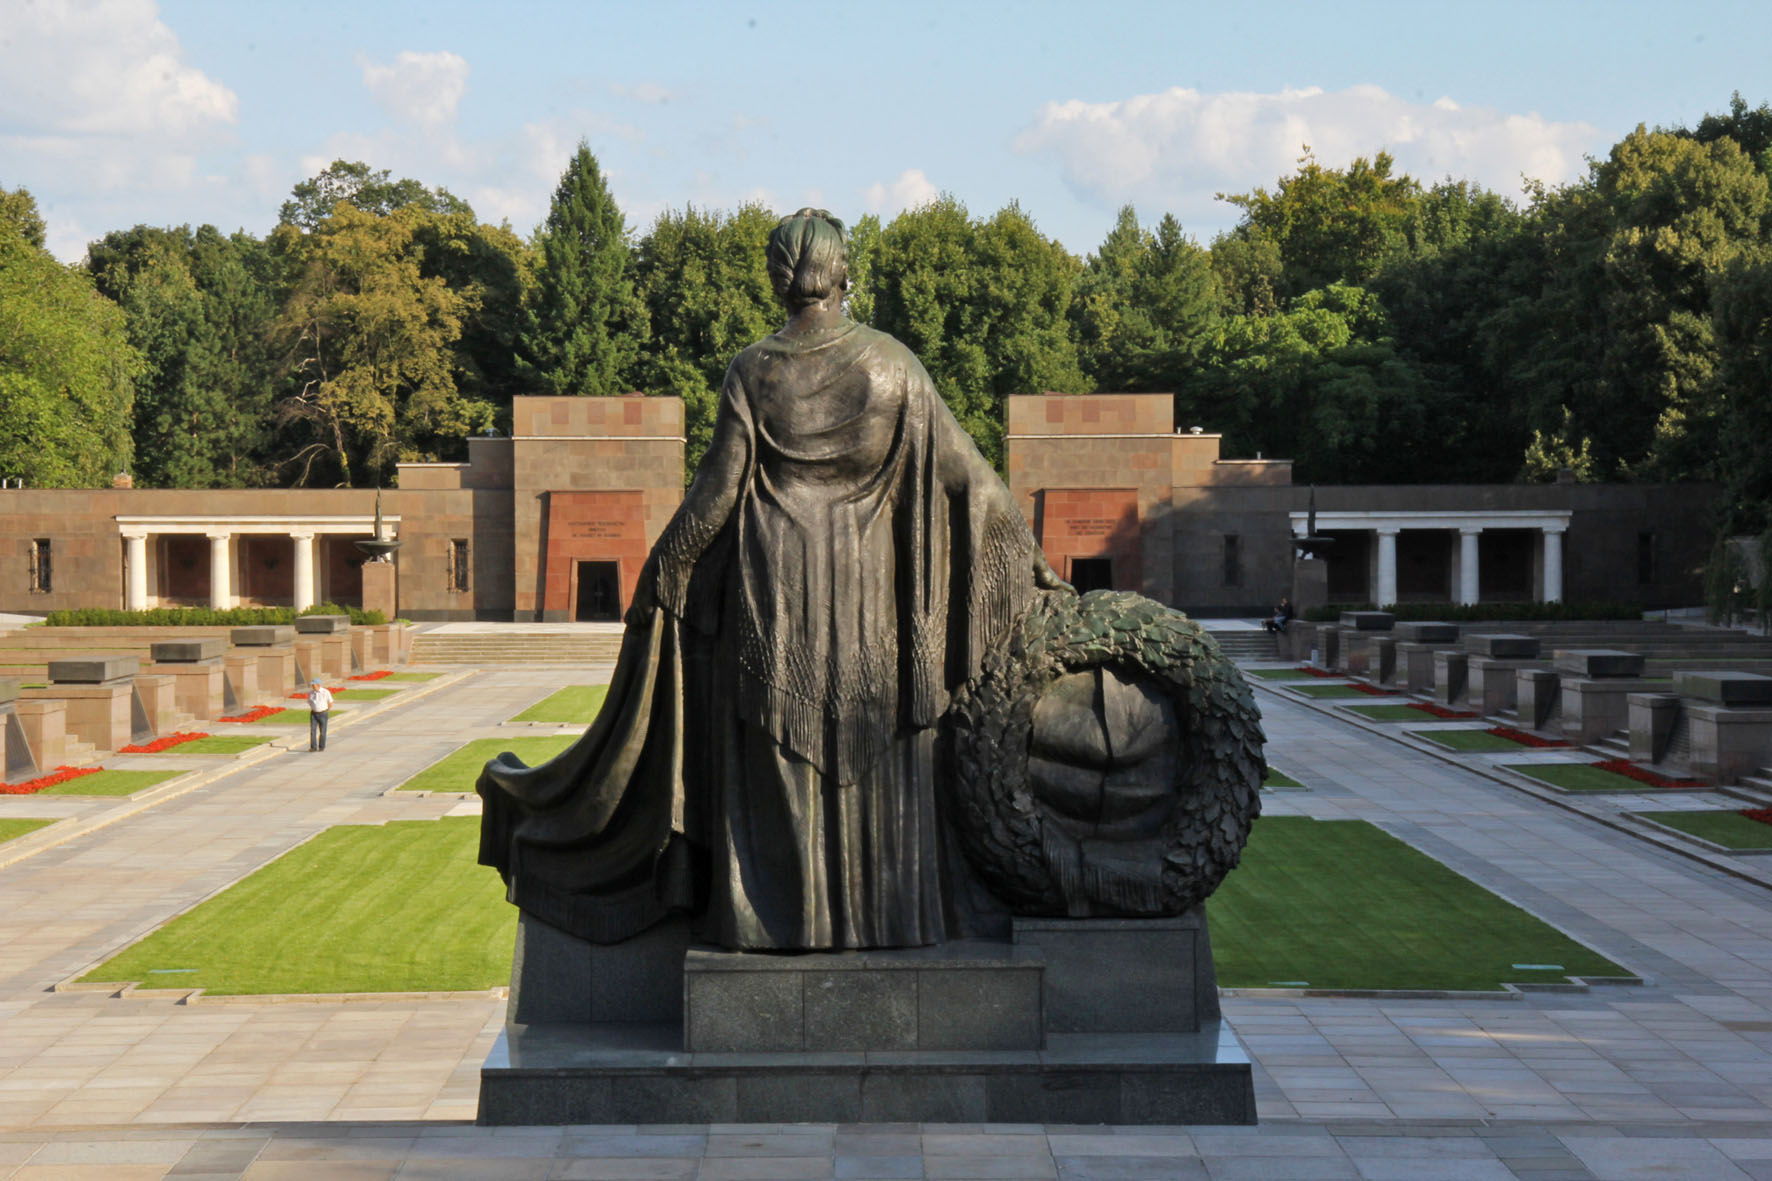 Mother Russia and Soviet Memorial in Schönholzer Heide in Berlin